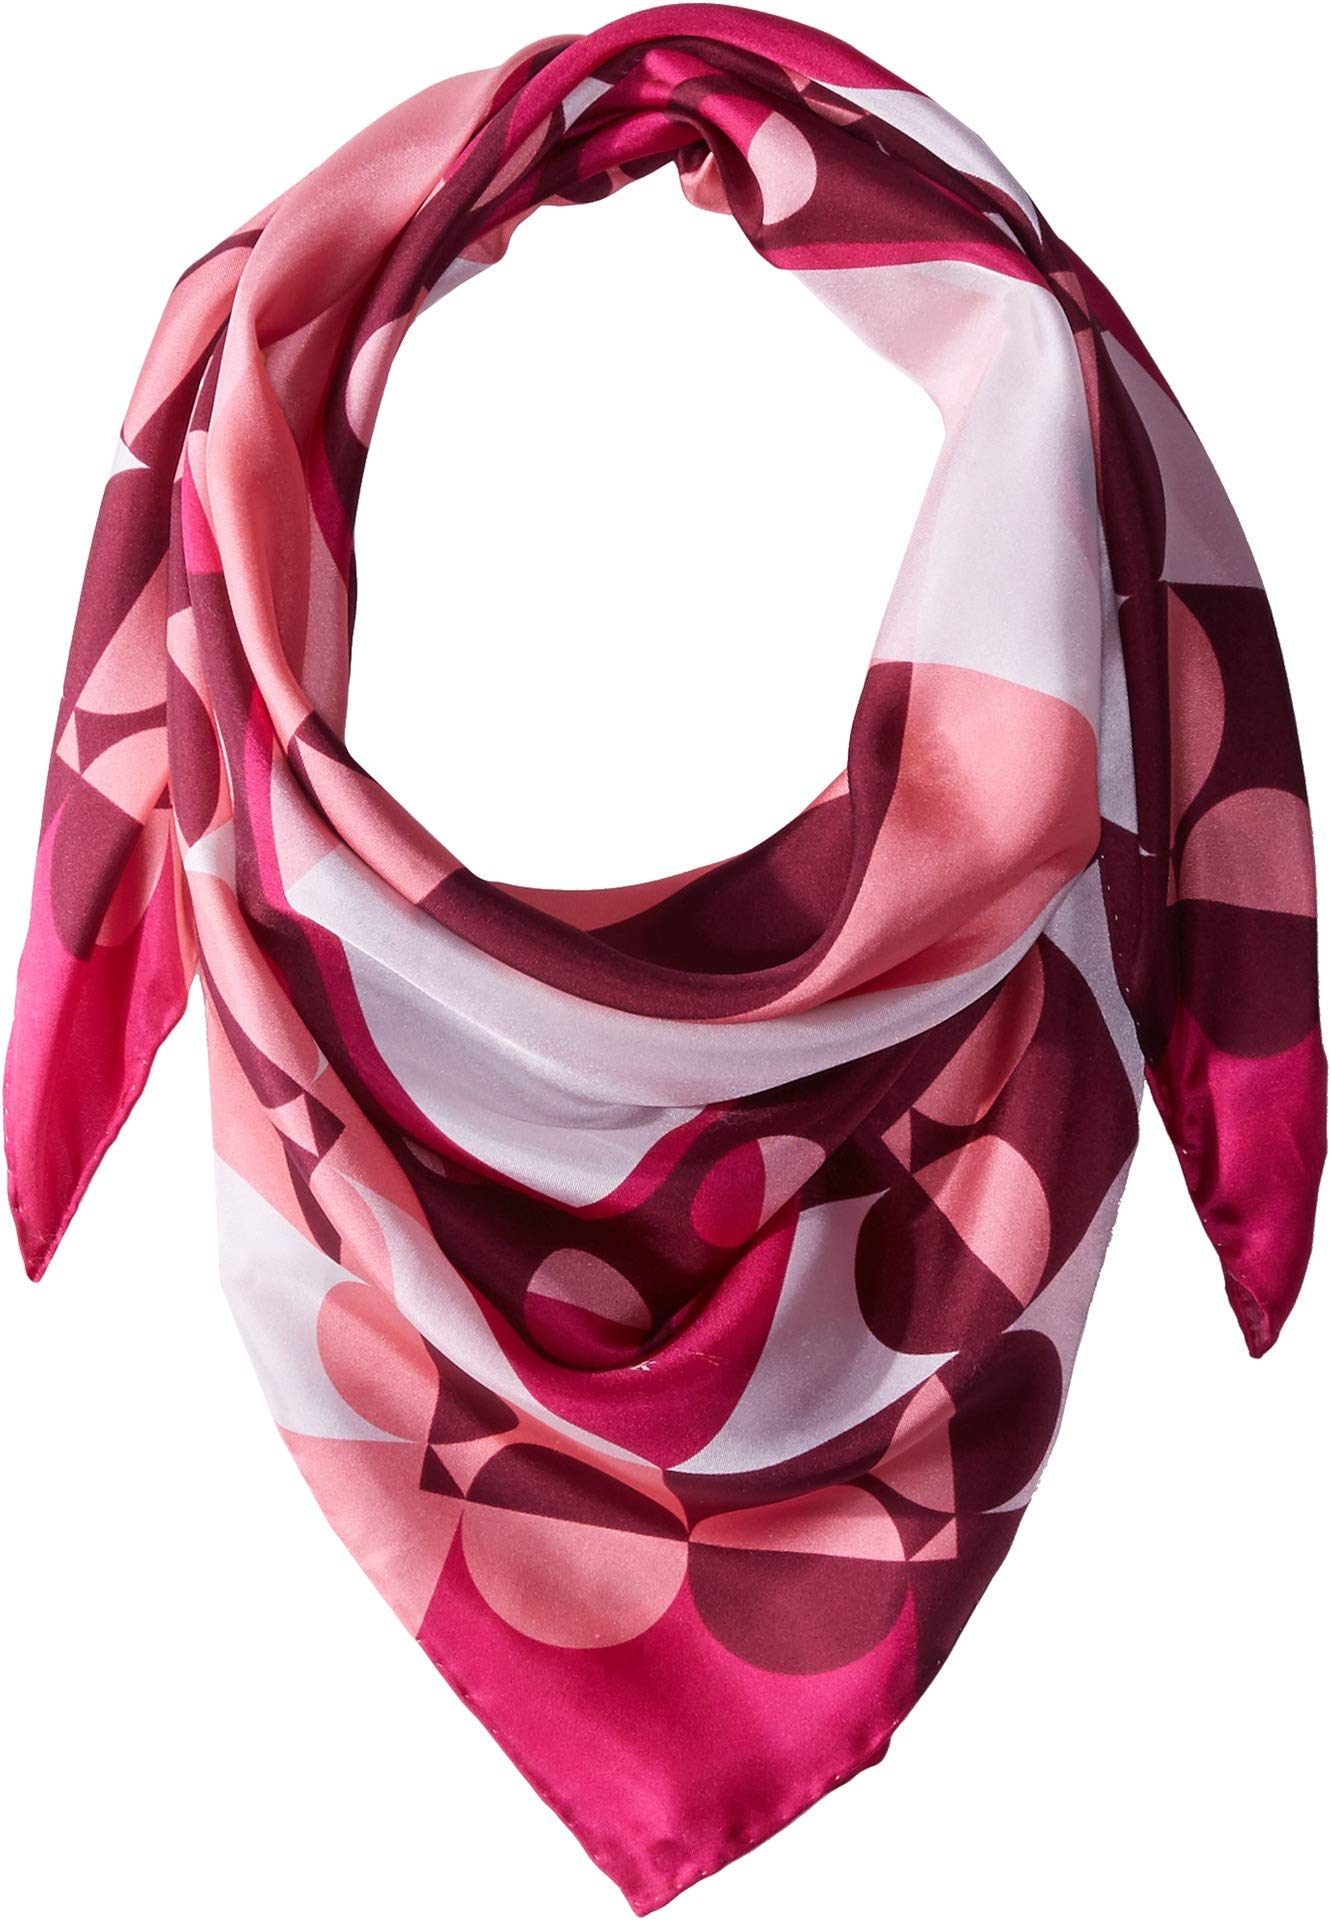 Kate Spade New York Women's Spade Border Silk Square Scarf Kinetic Pink One Size